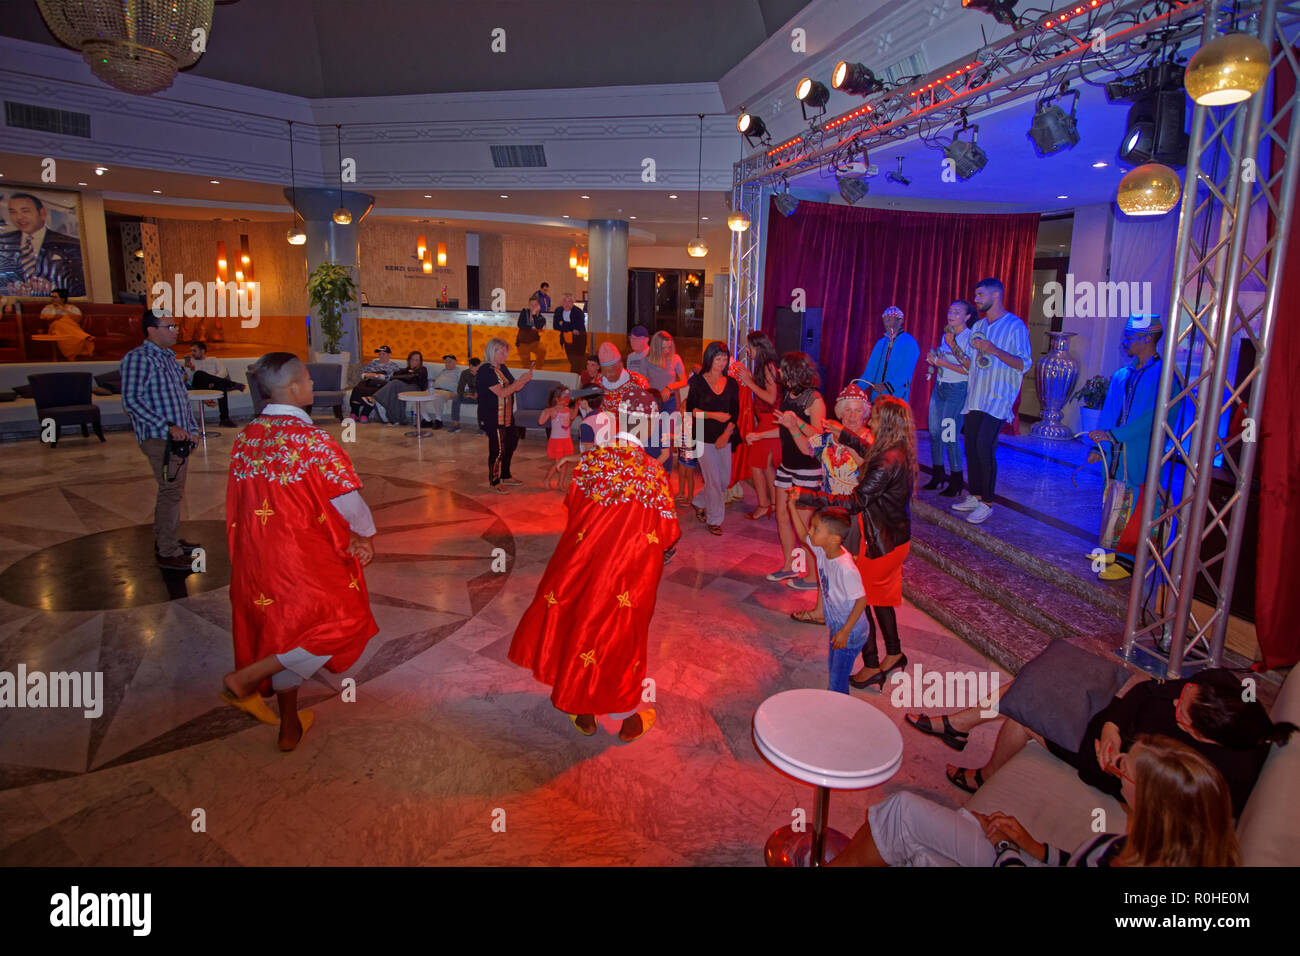 Guests join Moroccan folk performers at a Moroccan Night held at the Kenzi Europa Hotel in Agadir, Souss-Massa, Morocco. - Stock Image